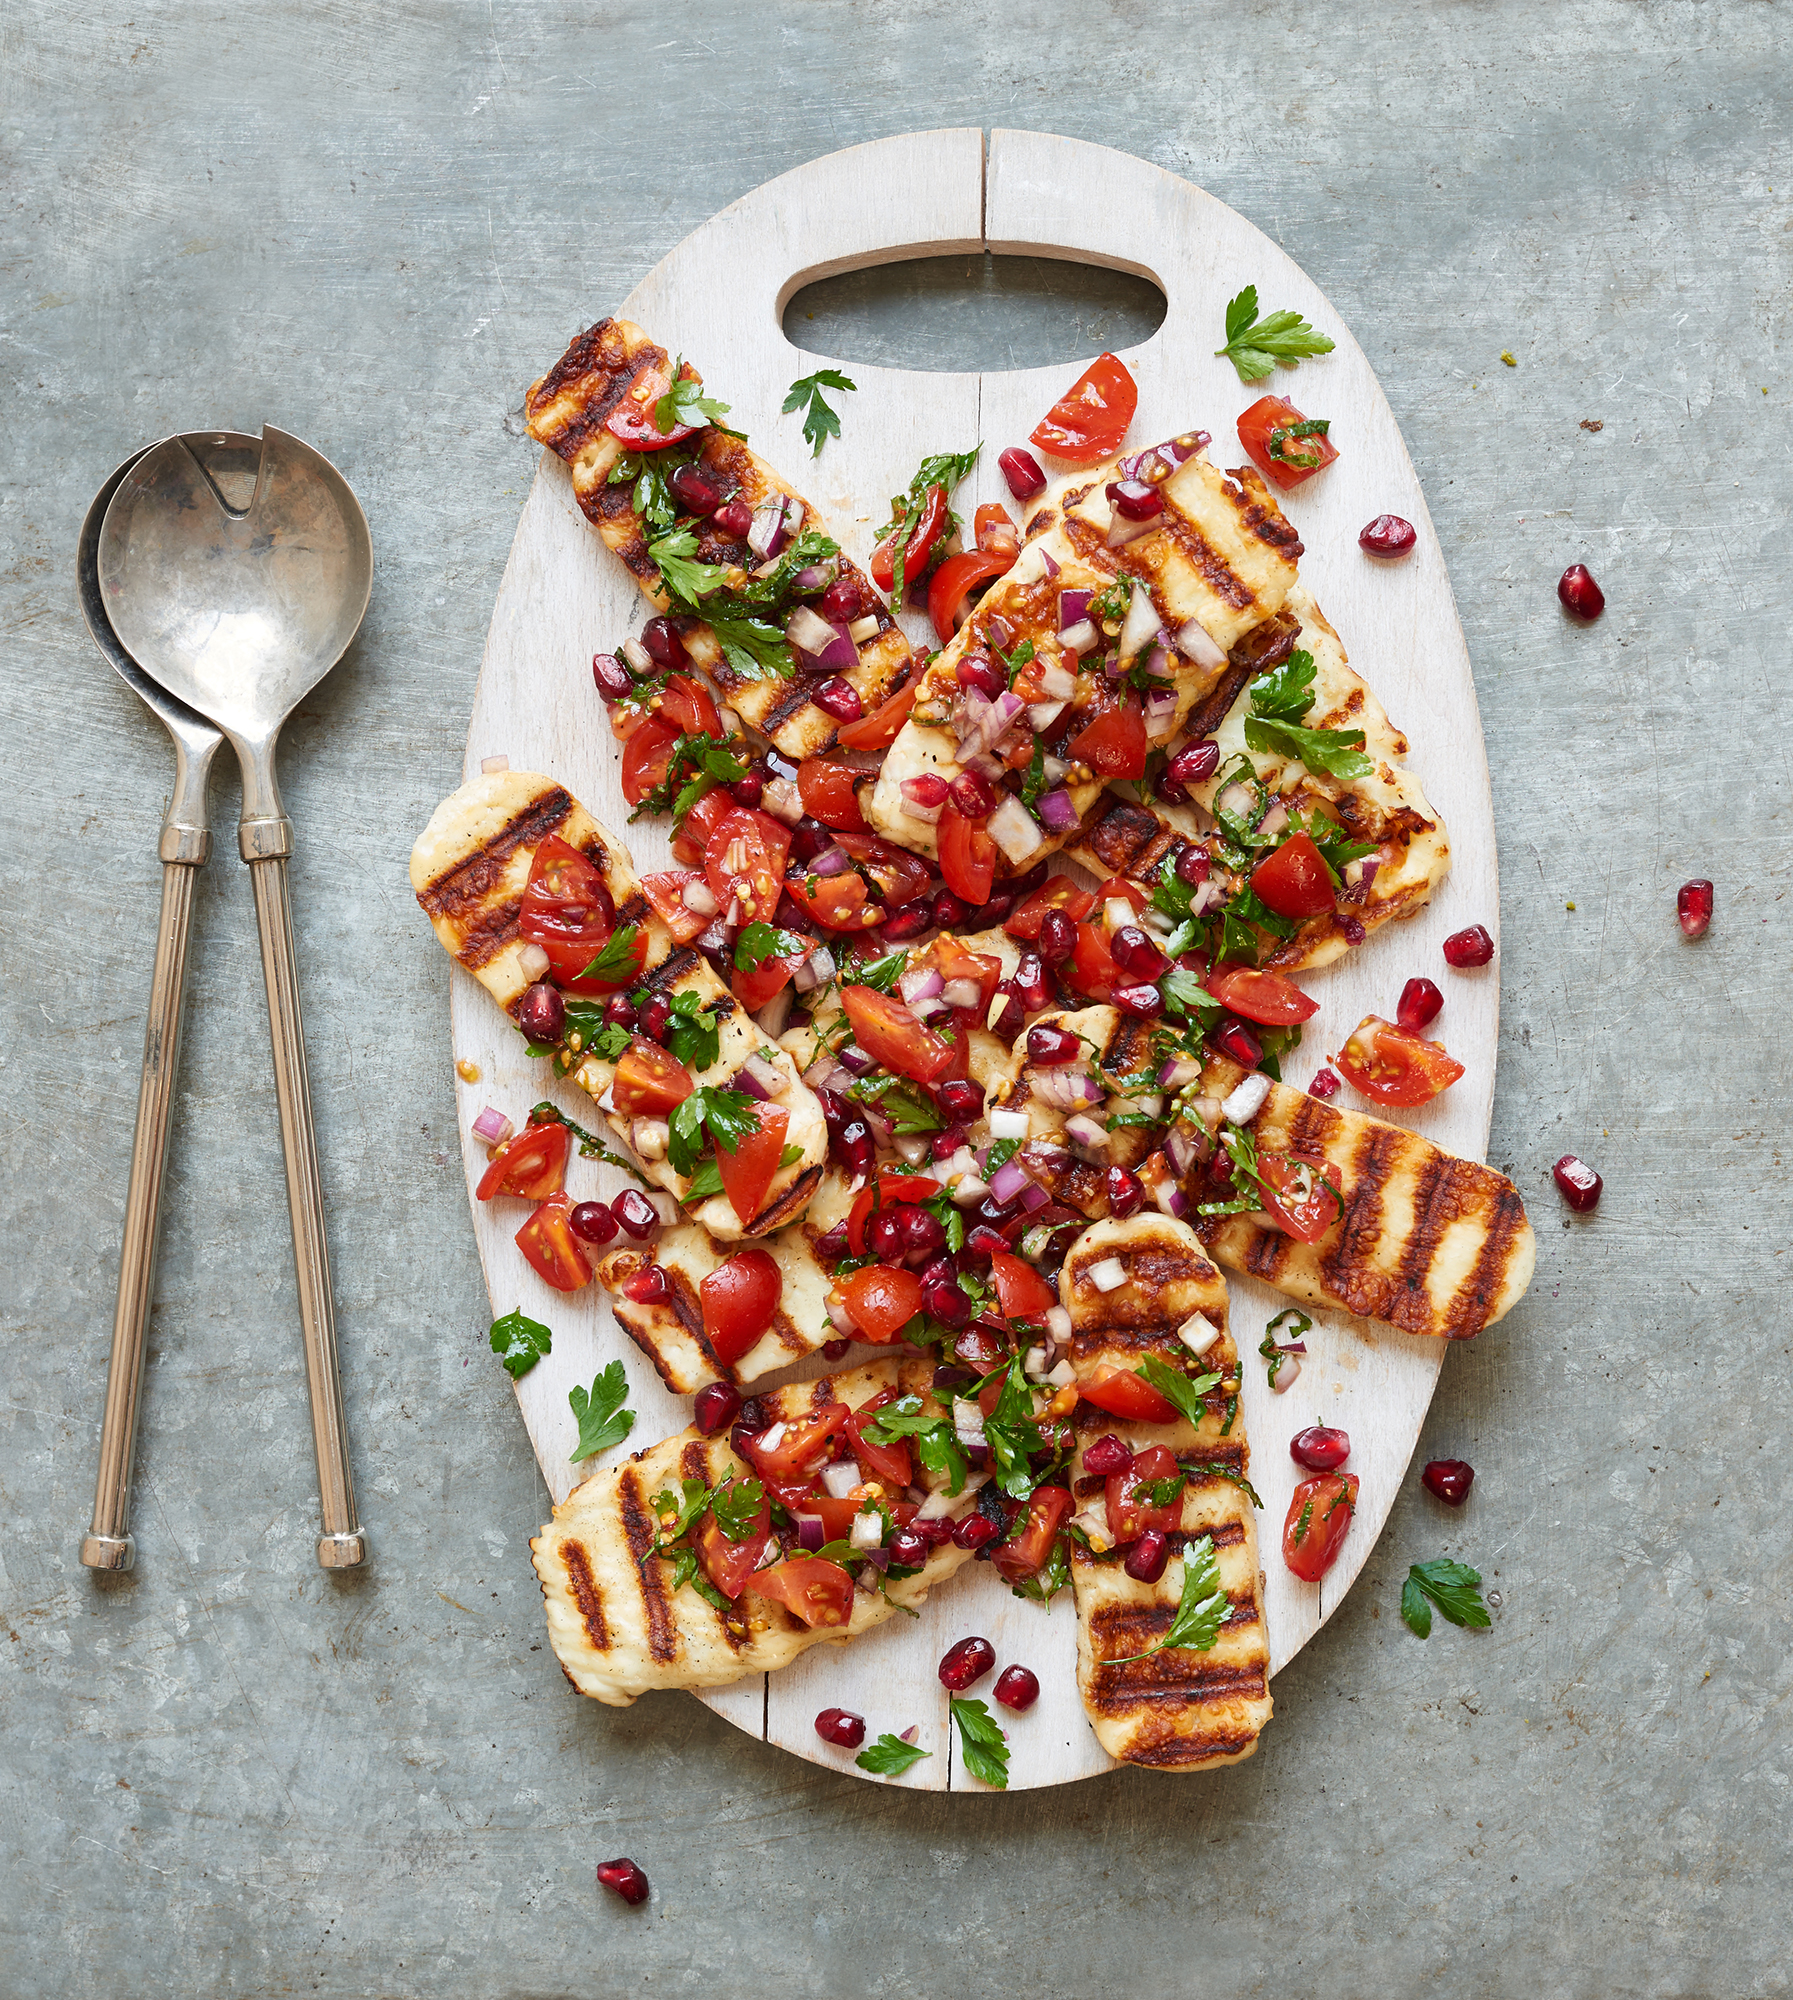 halloumi salad by food photographer Holly Pickering